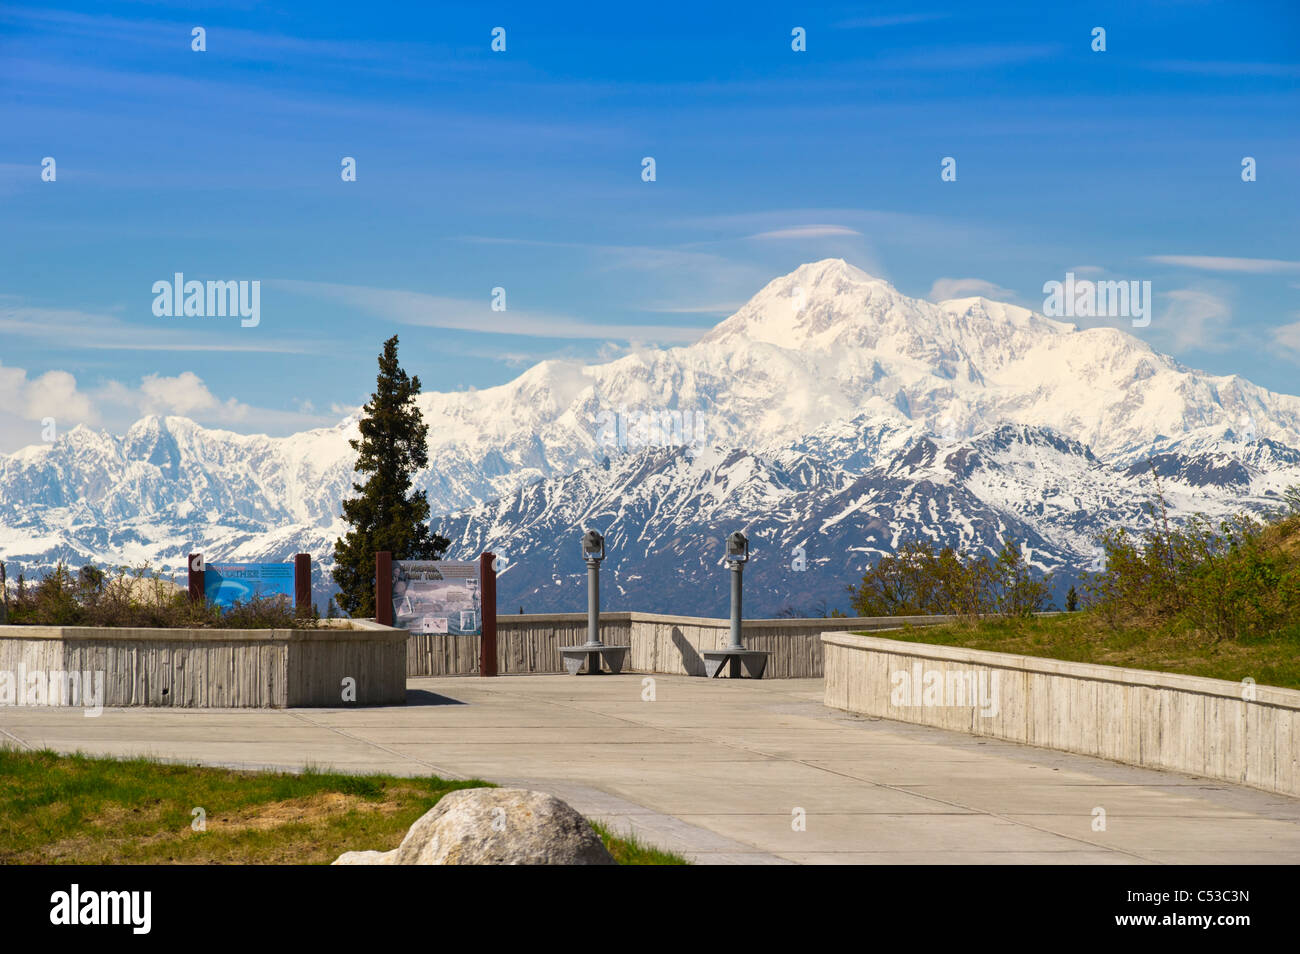 Alaska Range and Mount McKinley as seen from the Parks Highway and Susitna River look out, Alaska - Stock Image